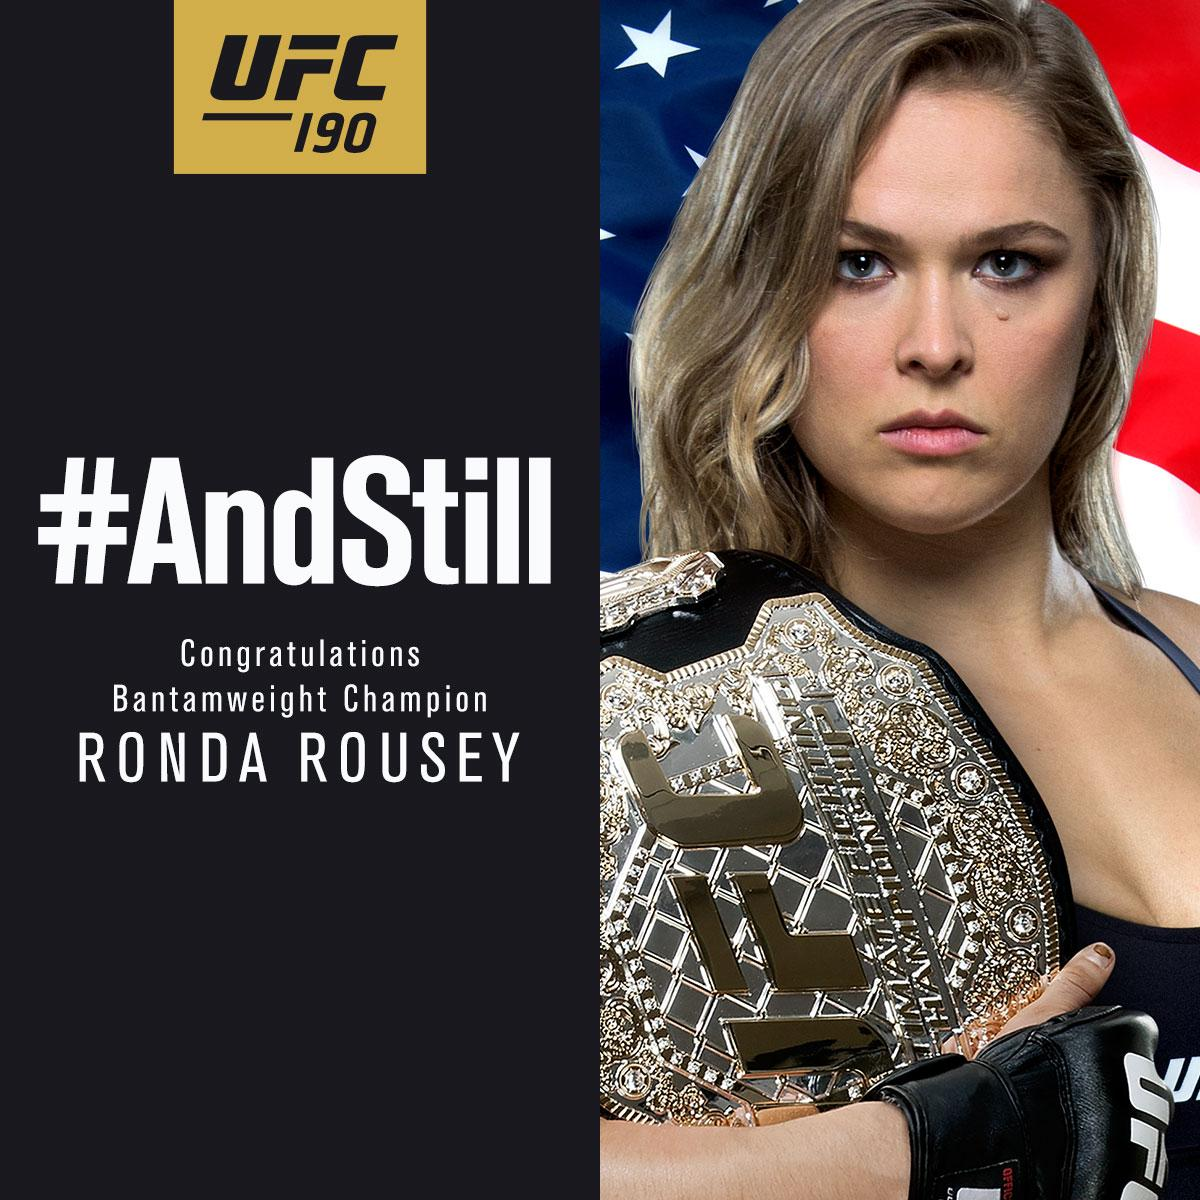 #AndStill the women's UFC bantamweight champion of the world, @RondaRousey! http://t.co/qupckl6TMk